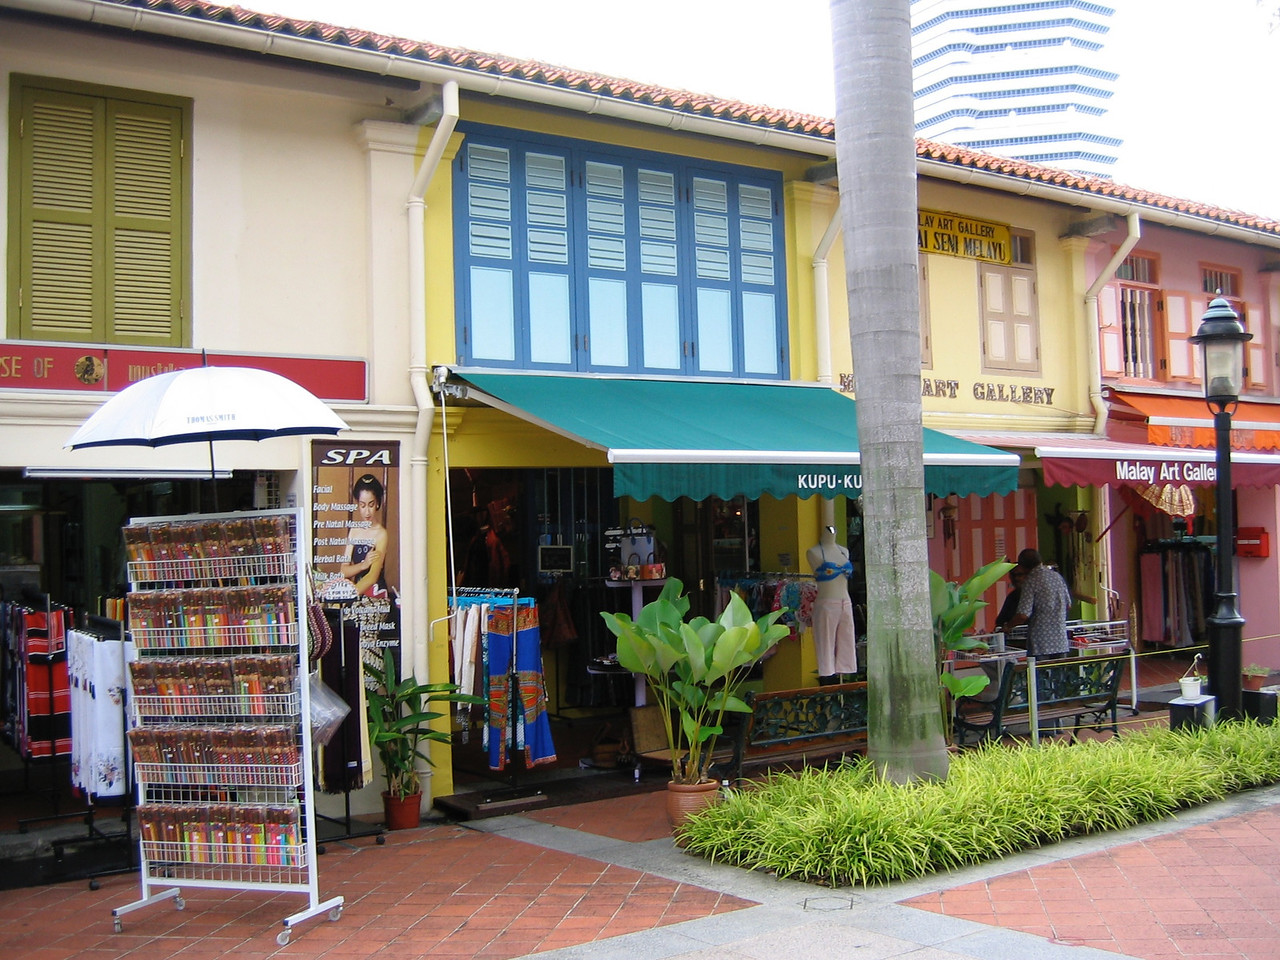 Along the pedestrian corridors, you can find shops selling baskets, handicrafts and many other unique items.